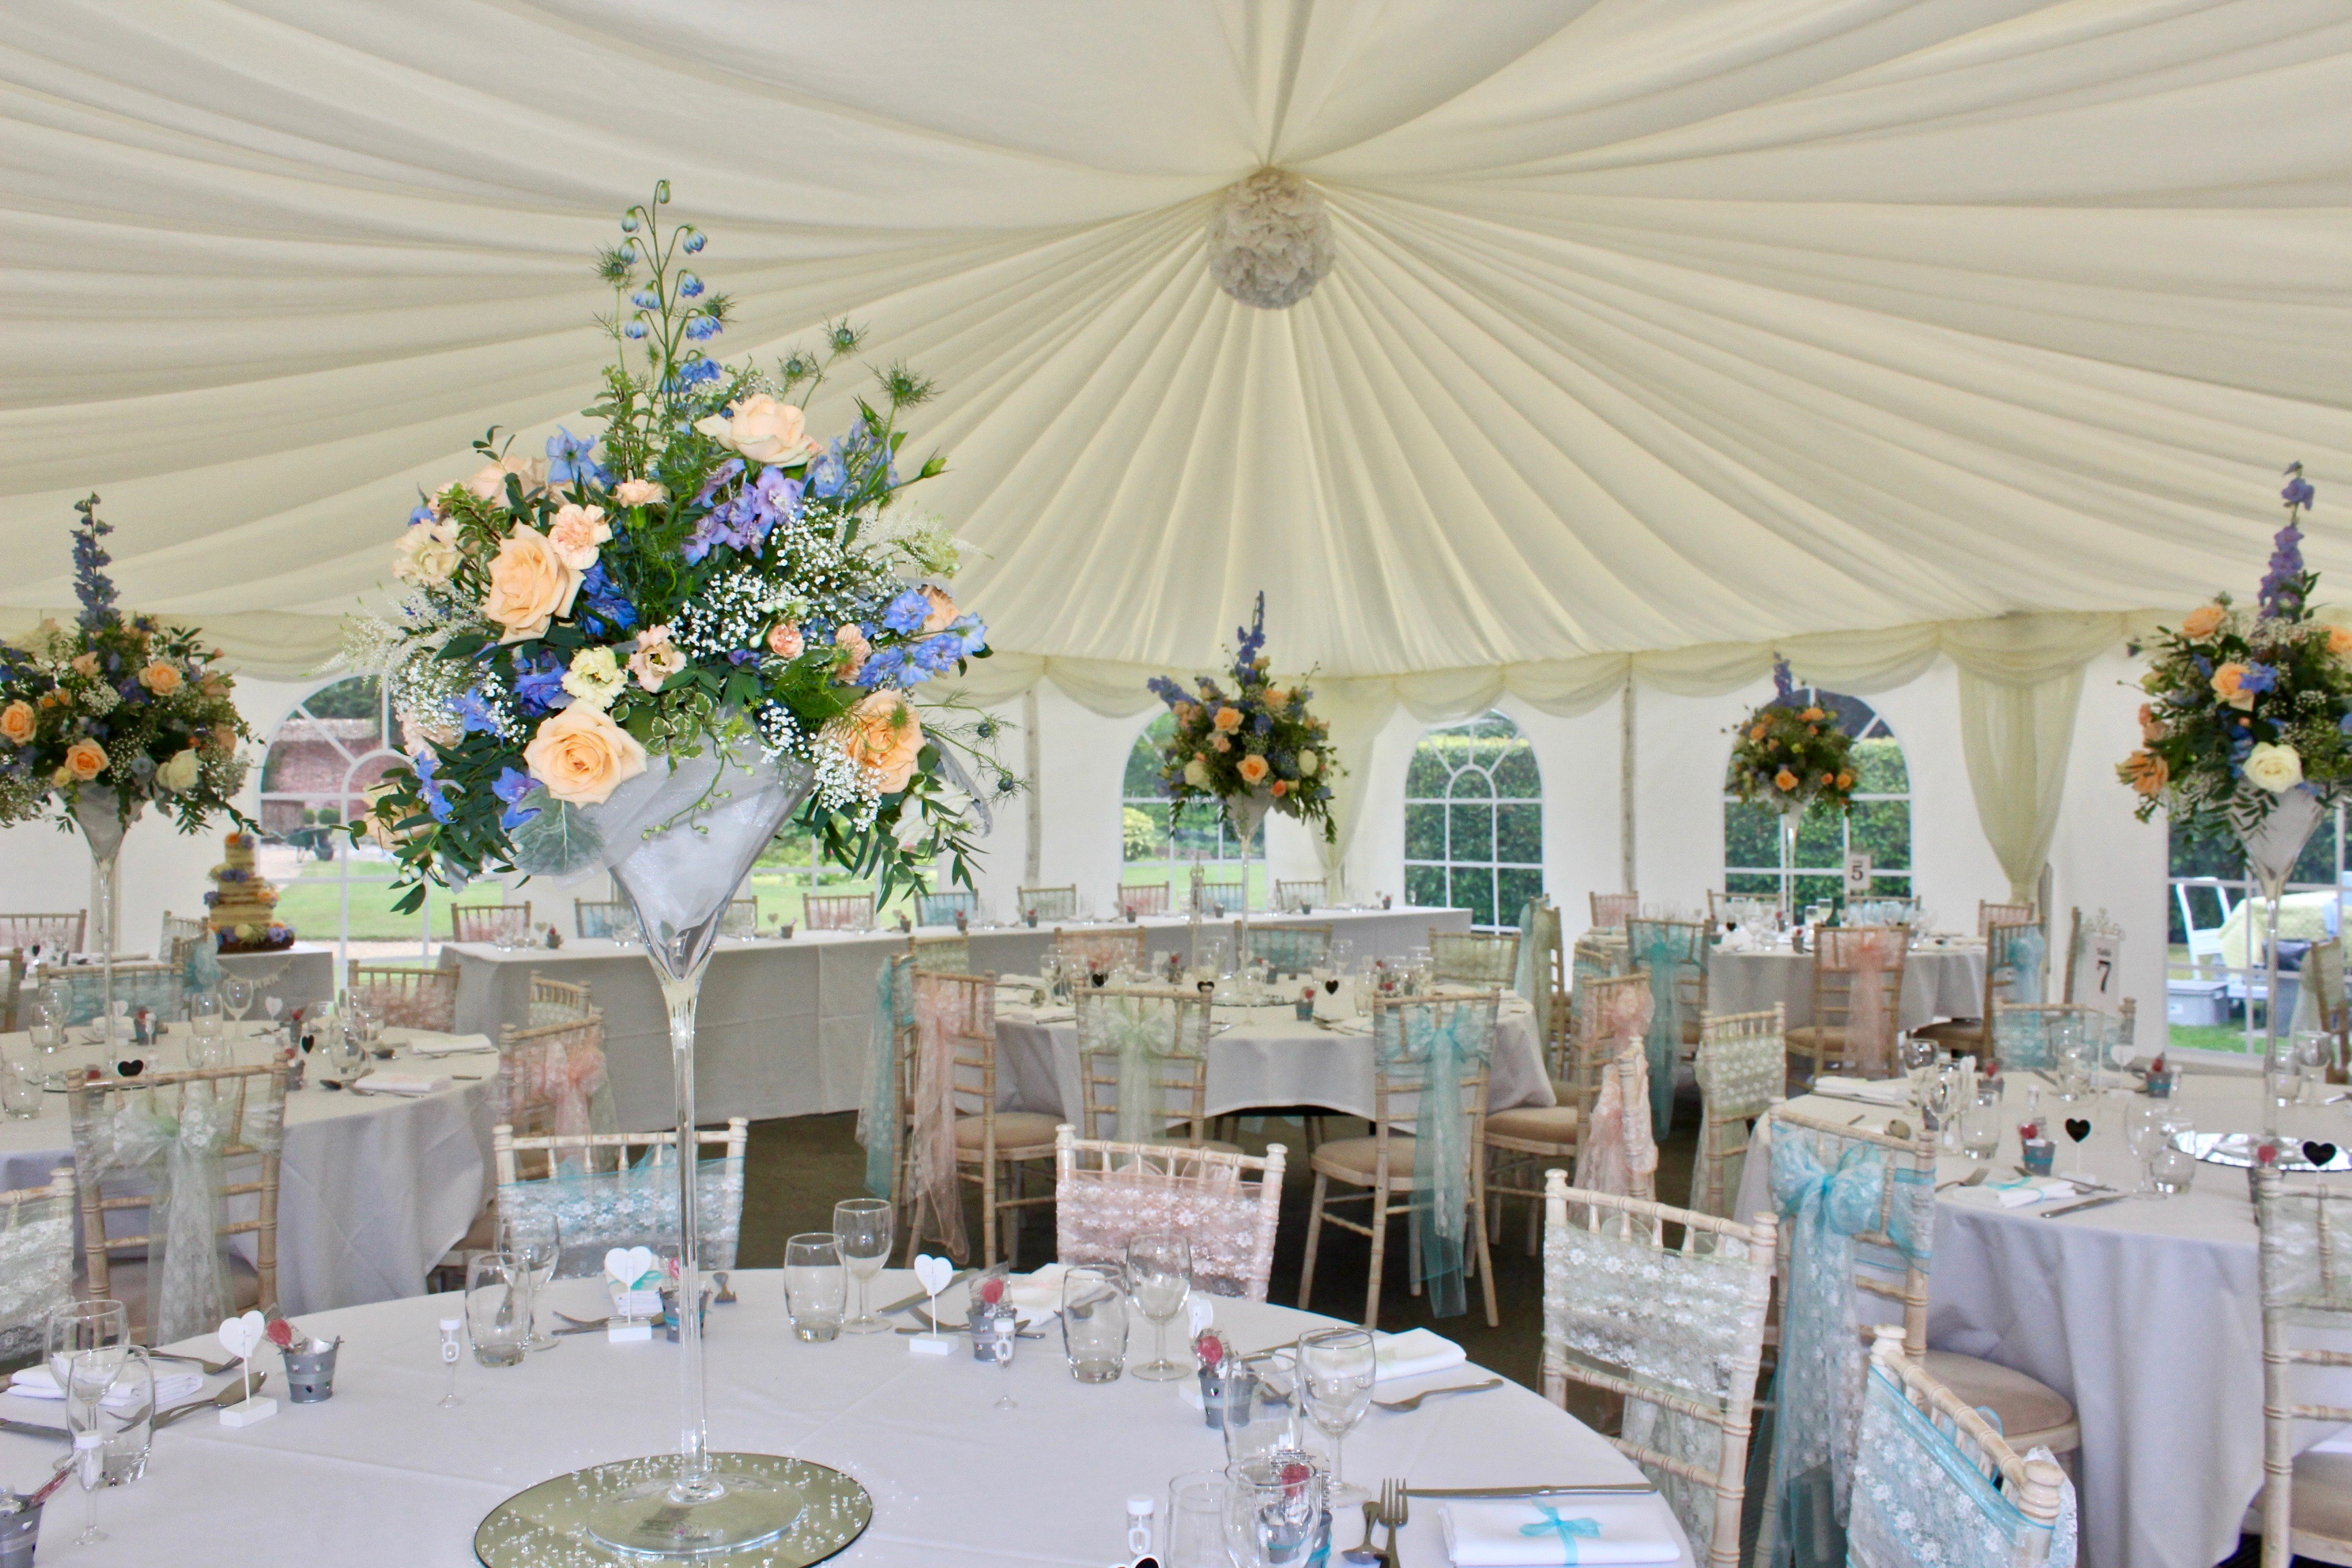 The Orangery Suite Marquee Reception